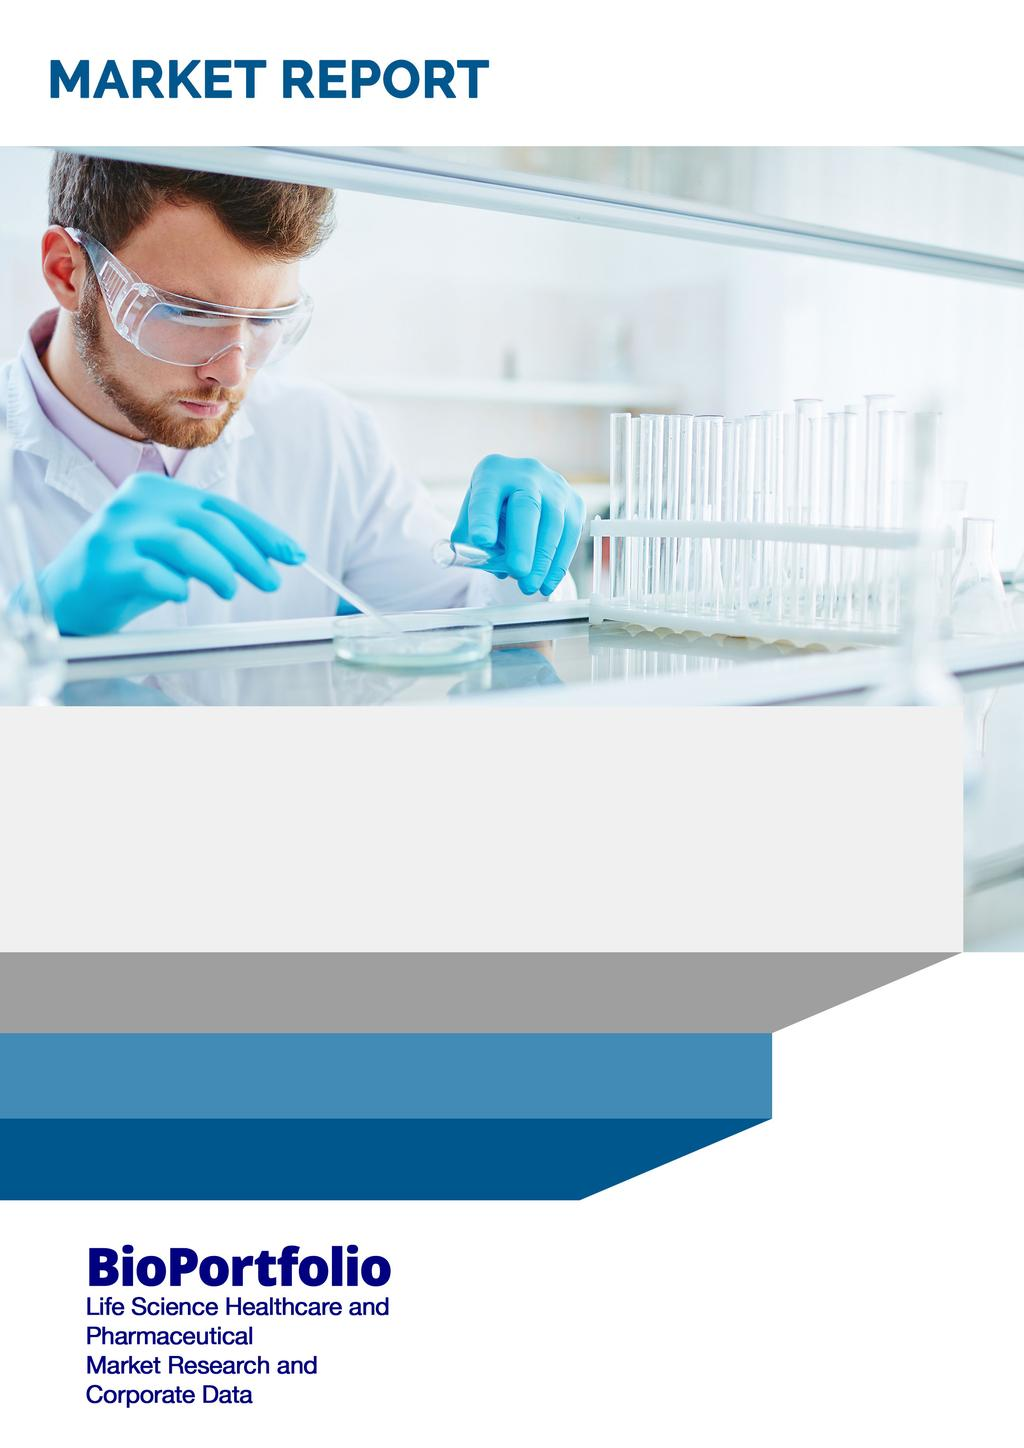 Poultry Diagnostics Market by Test (ELISA, PCR) Disease (Avian Salmonellosis, Avian Influenza, Newcastle Disease, Avian